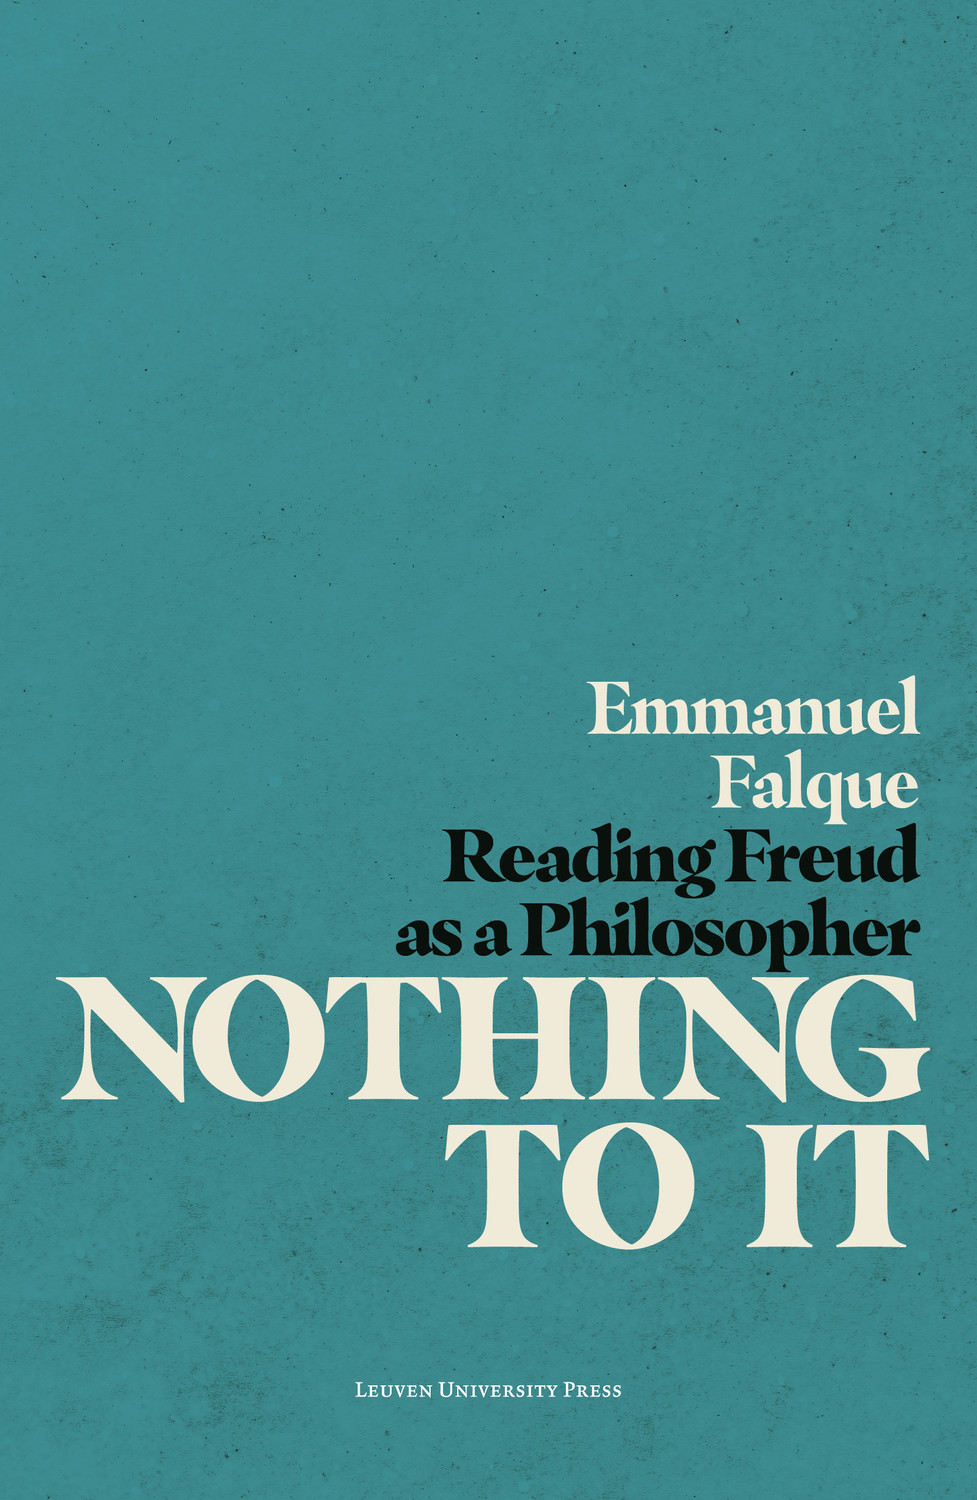 Nothing to It: Reading Freud as a Philosopher Book Cover